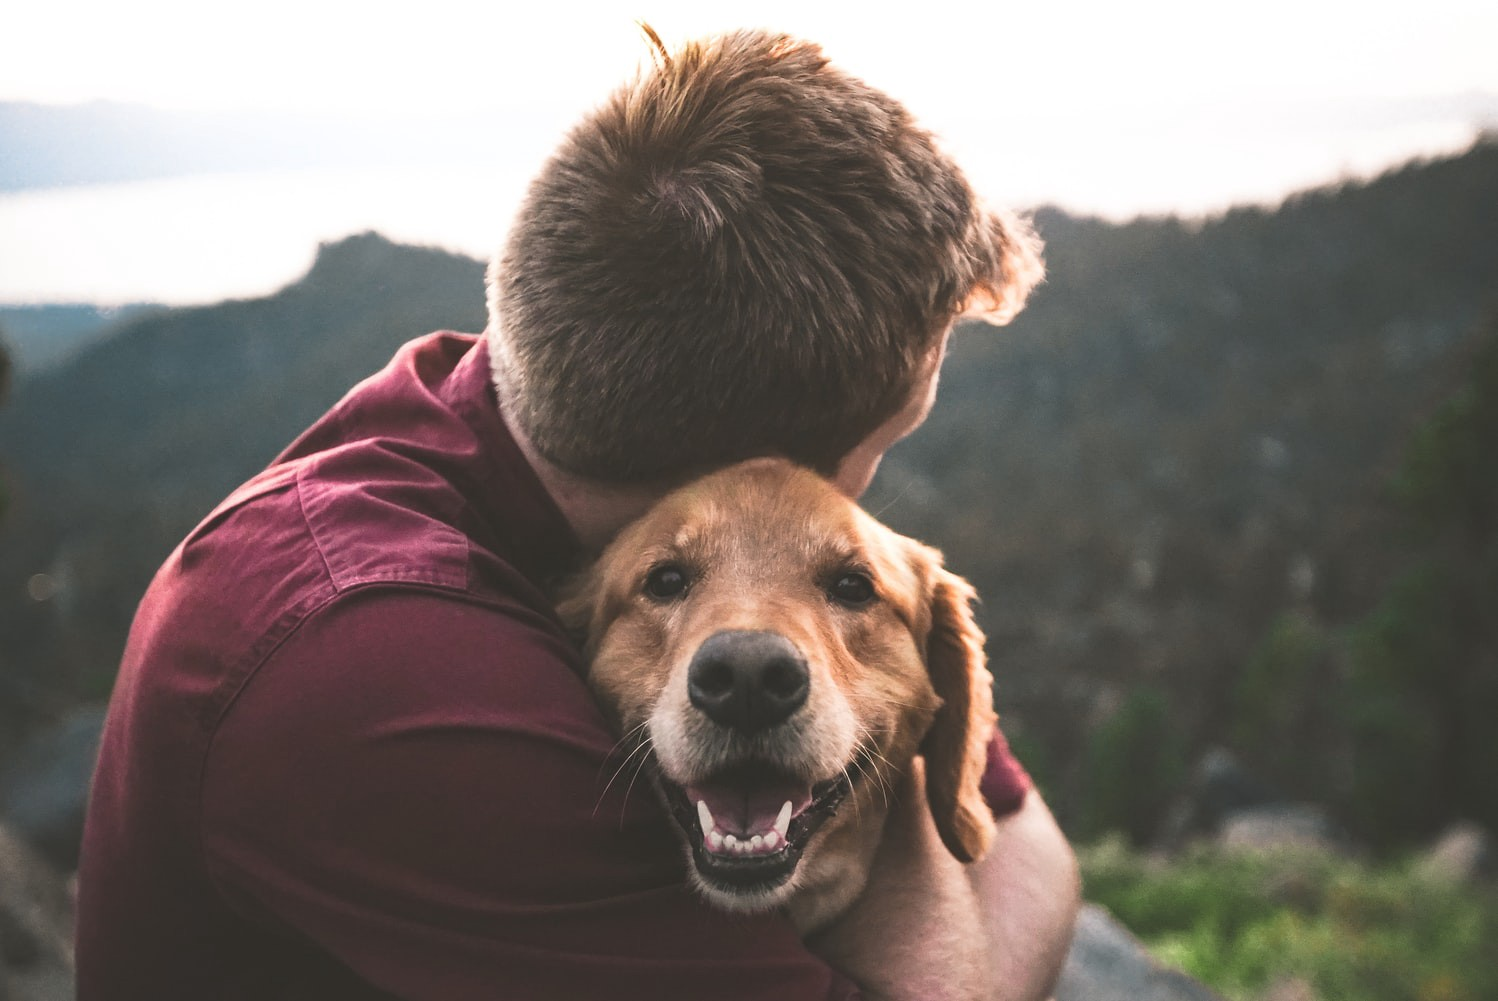 Man hugging a dog.